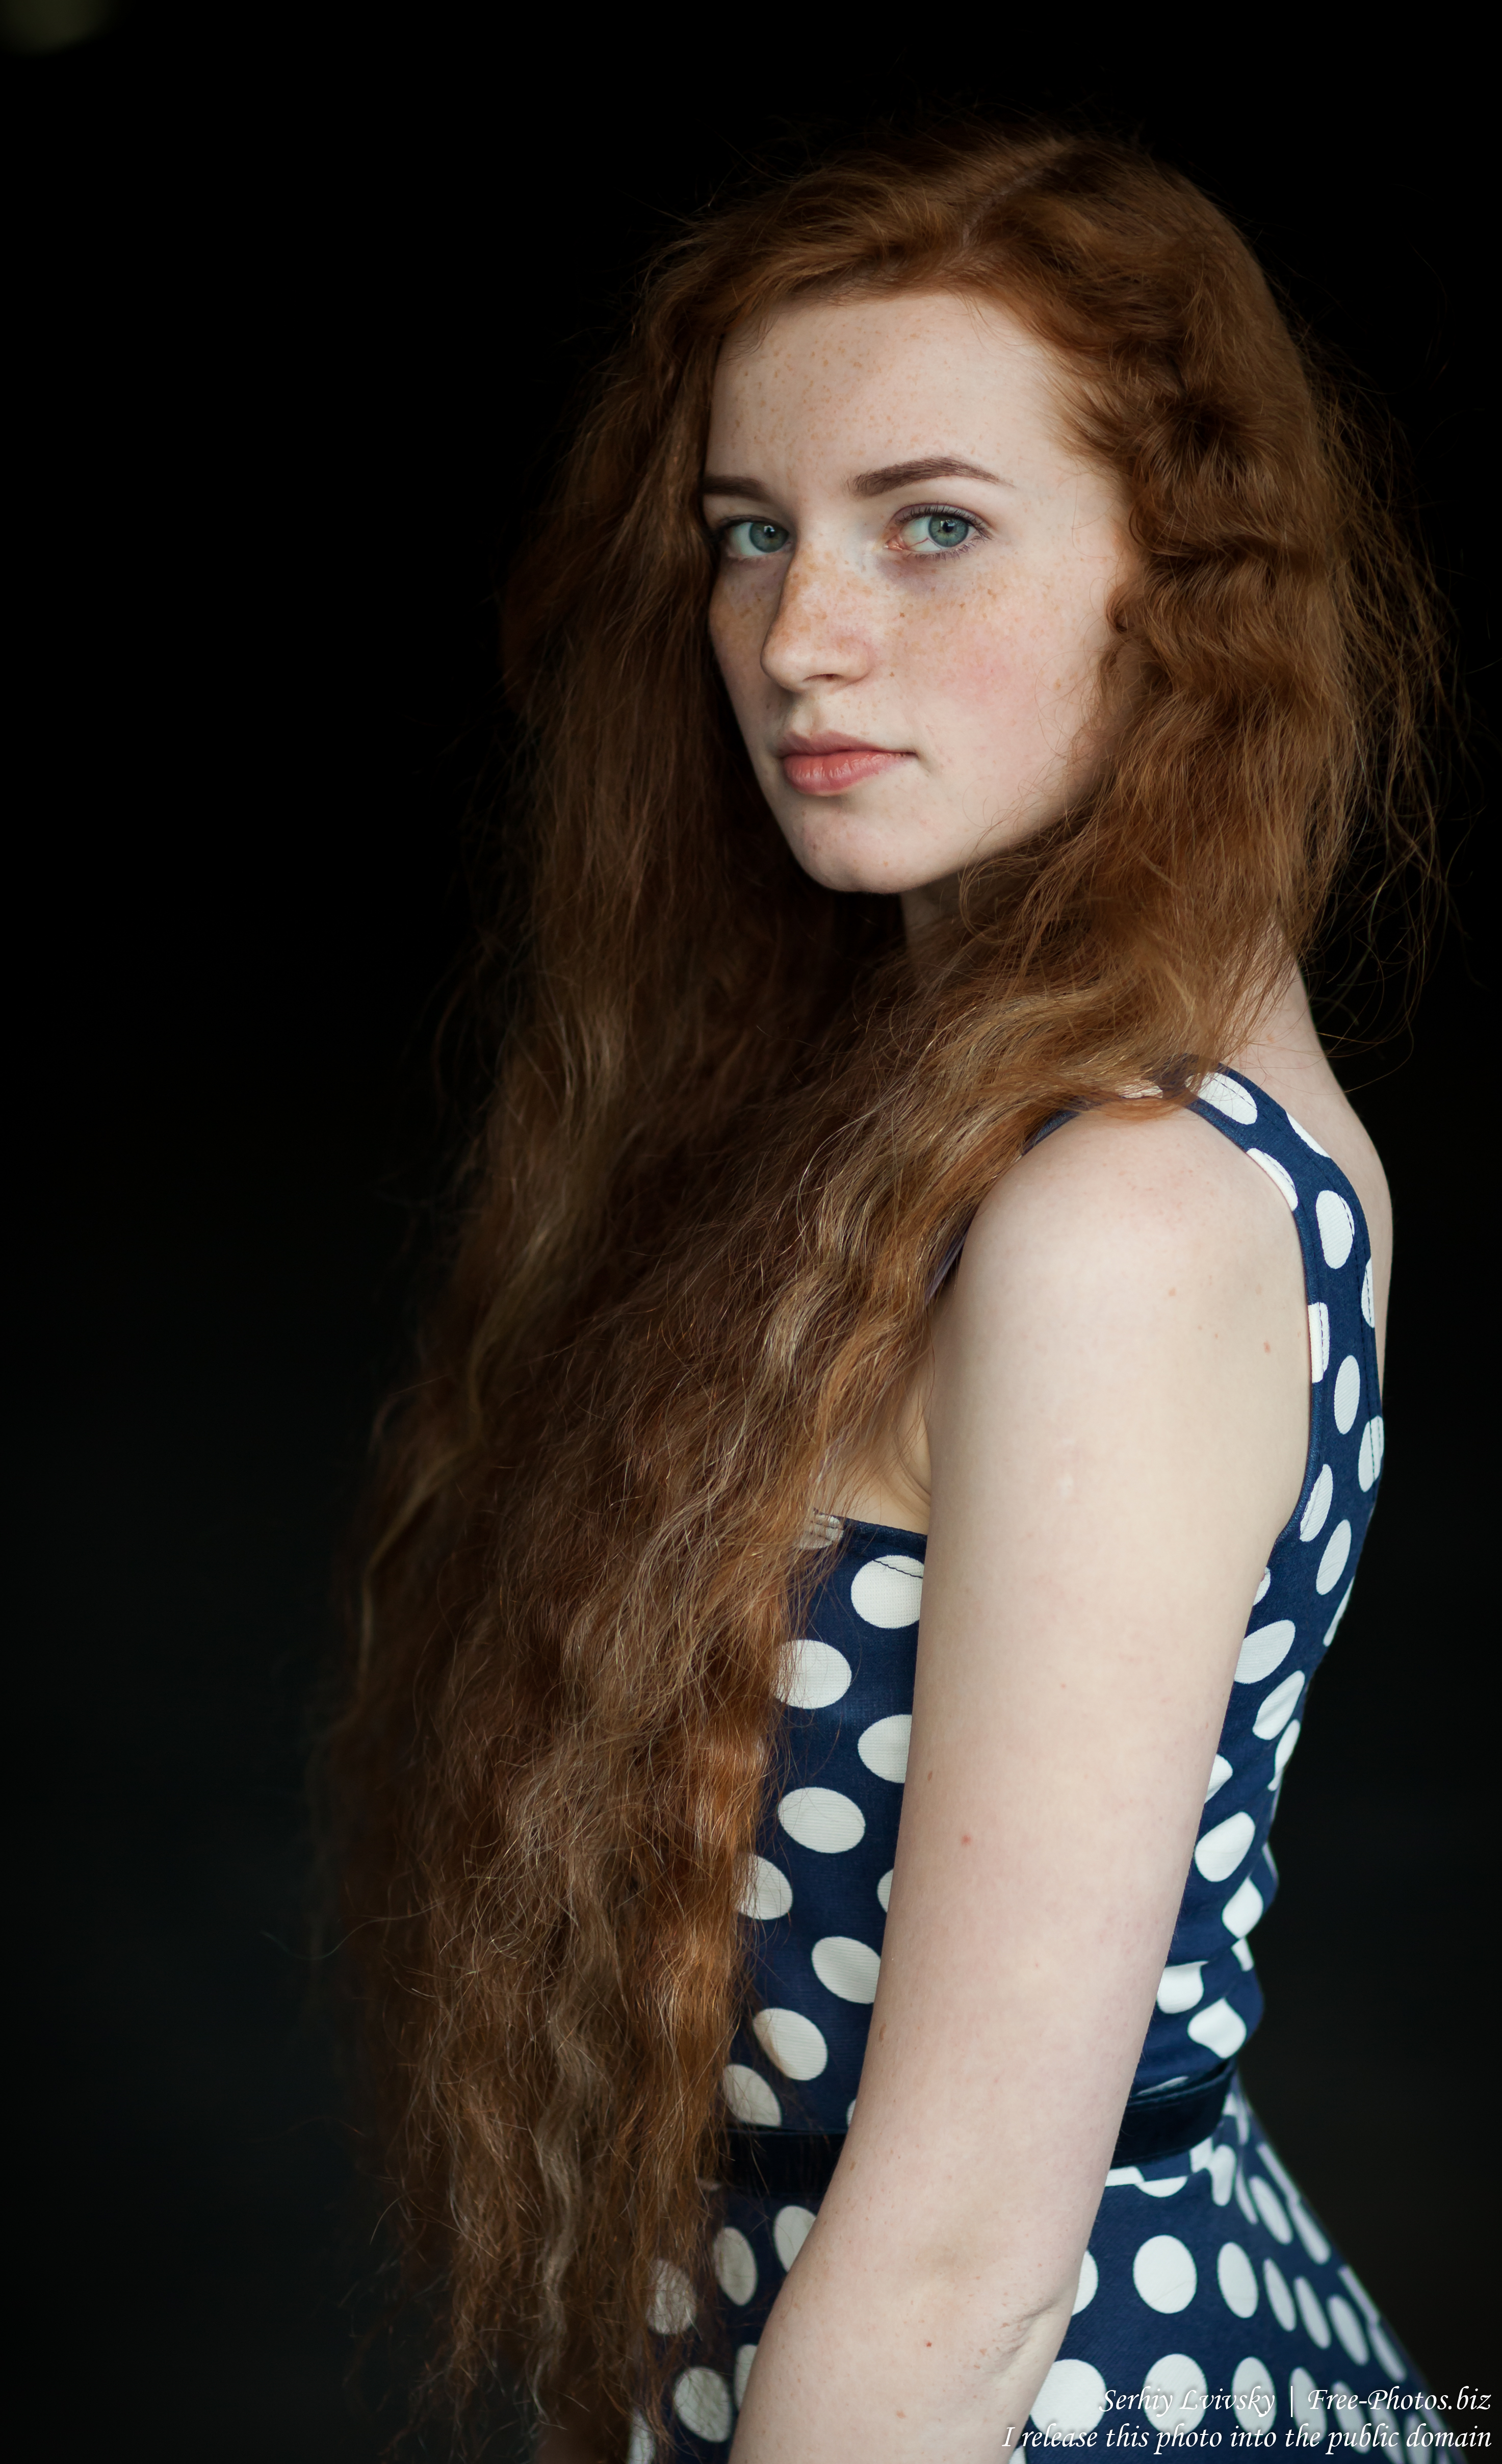 Ania - a 19-year-old natural red-haired girl photographed in June 2017 by Serhiy Lvivsky, picture 21